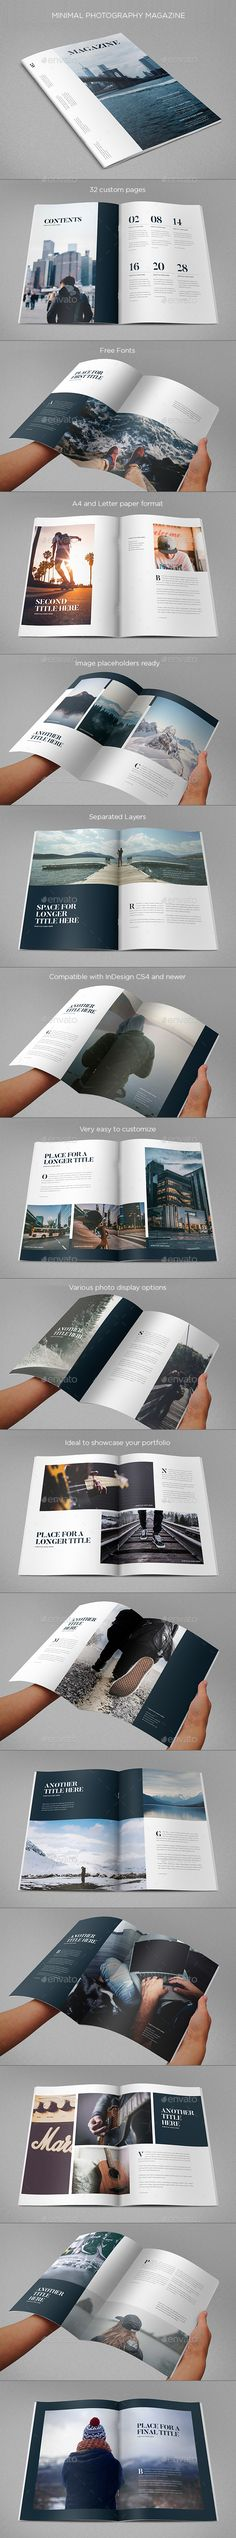 Minimal Photography Magazine Template InDesign INDD - 32 Custom Pages Design Brochure, Booklet Design, Brochure Layout, Graphic Design Layouts, Cv Inspiration, Graphic Design Inspiration, Editorial Layout, Editorial Design, Minimal Photography